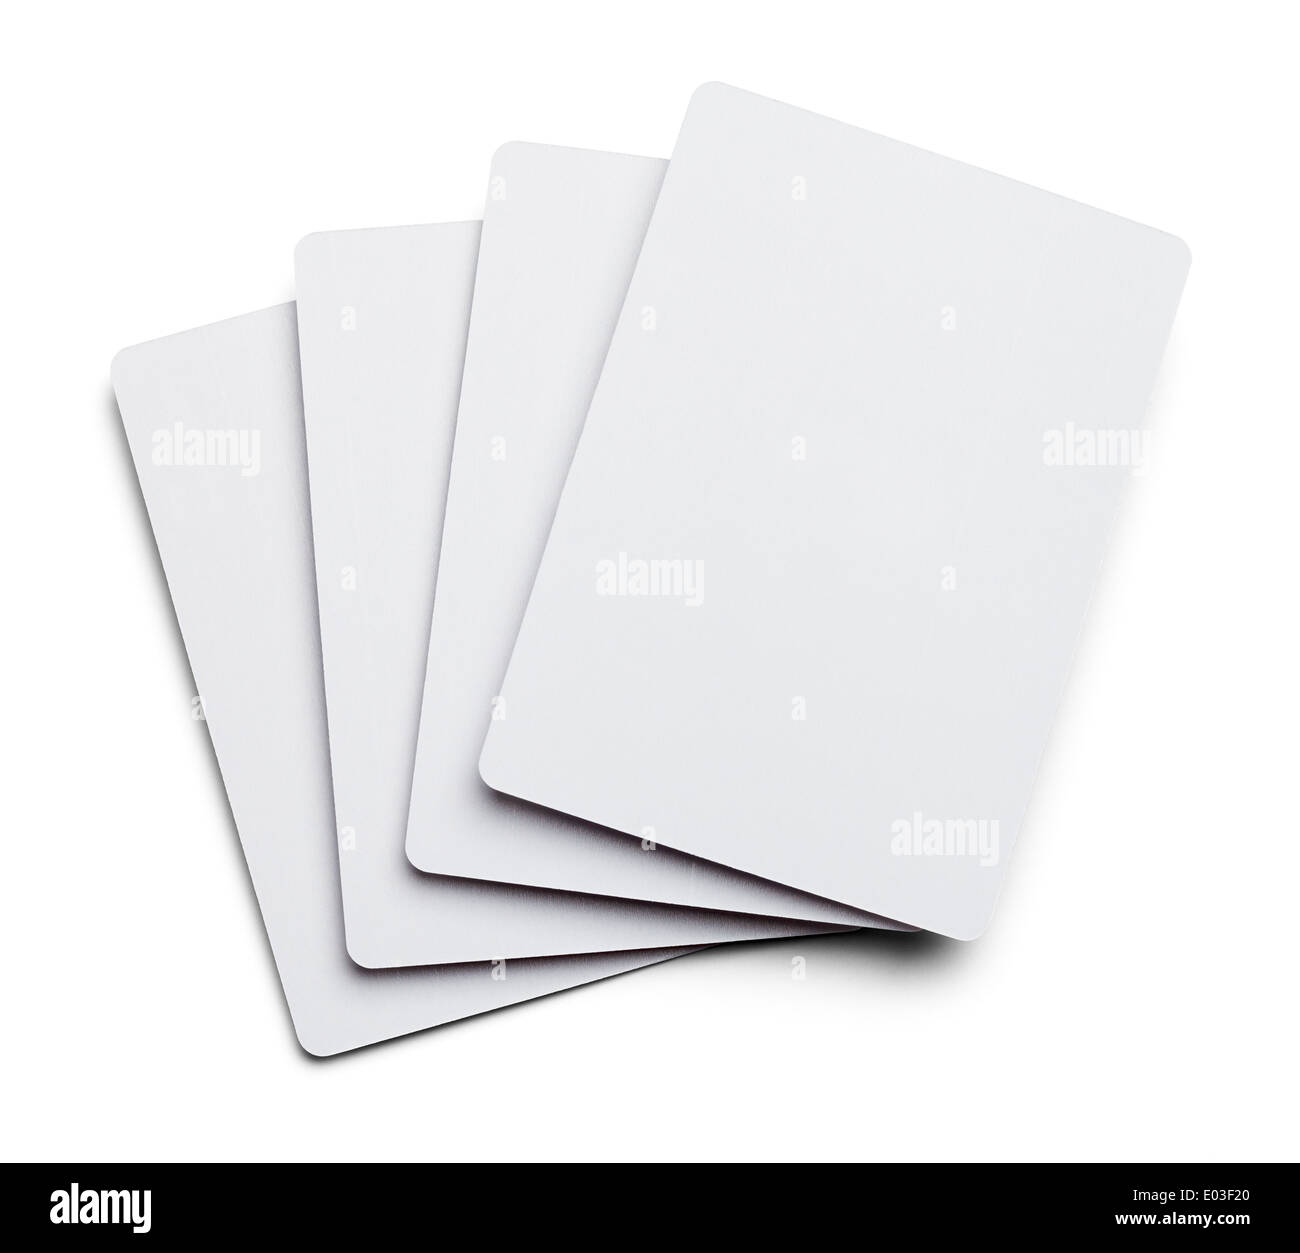 Four Blank Poker Cards Isolated on White Background. - Stock Image